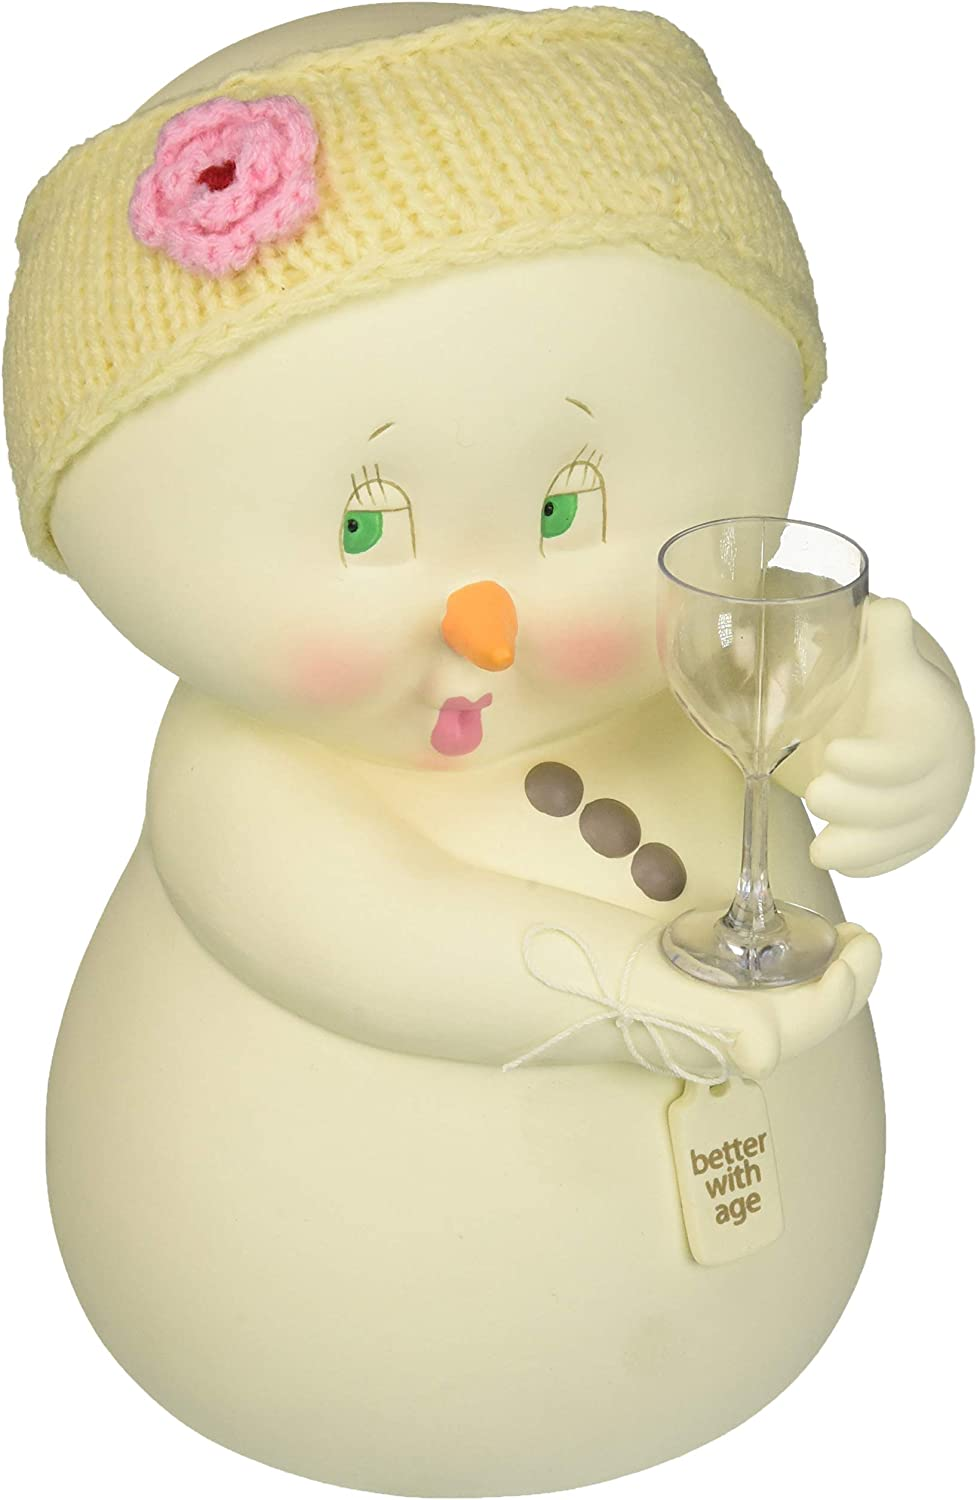 "Department 56 Snowpinions ""Better With Age"" Porcelain Christmas Figurine, 8.75"""